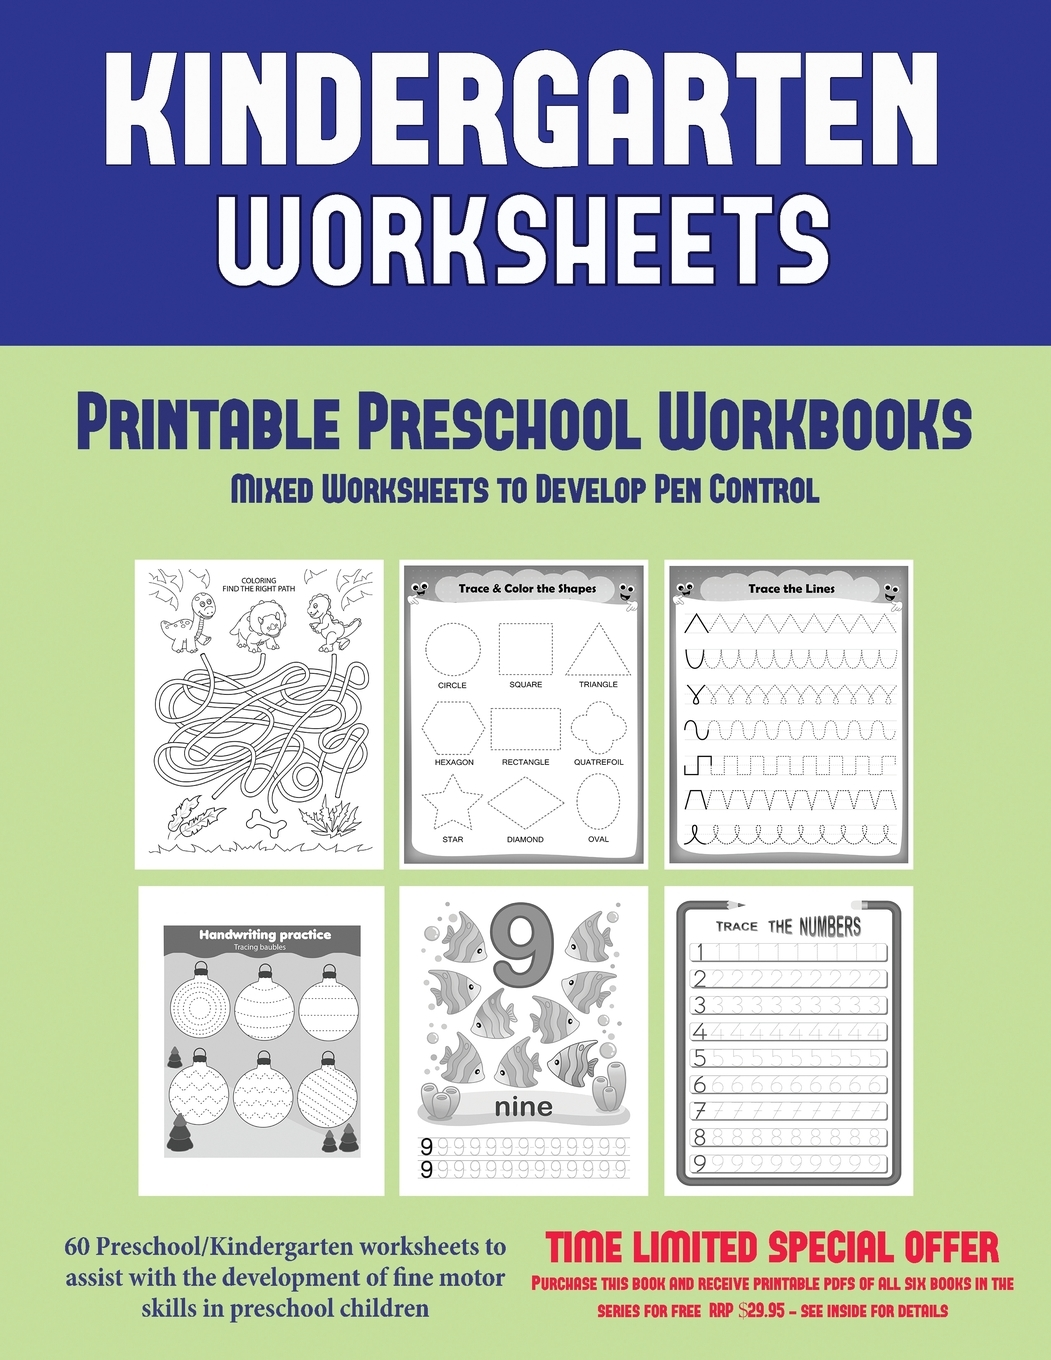 Printable Preschool Workbooks Printable Preschool